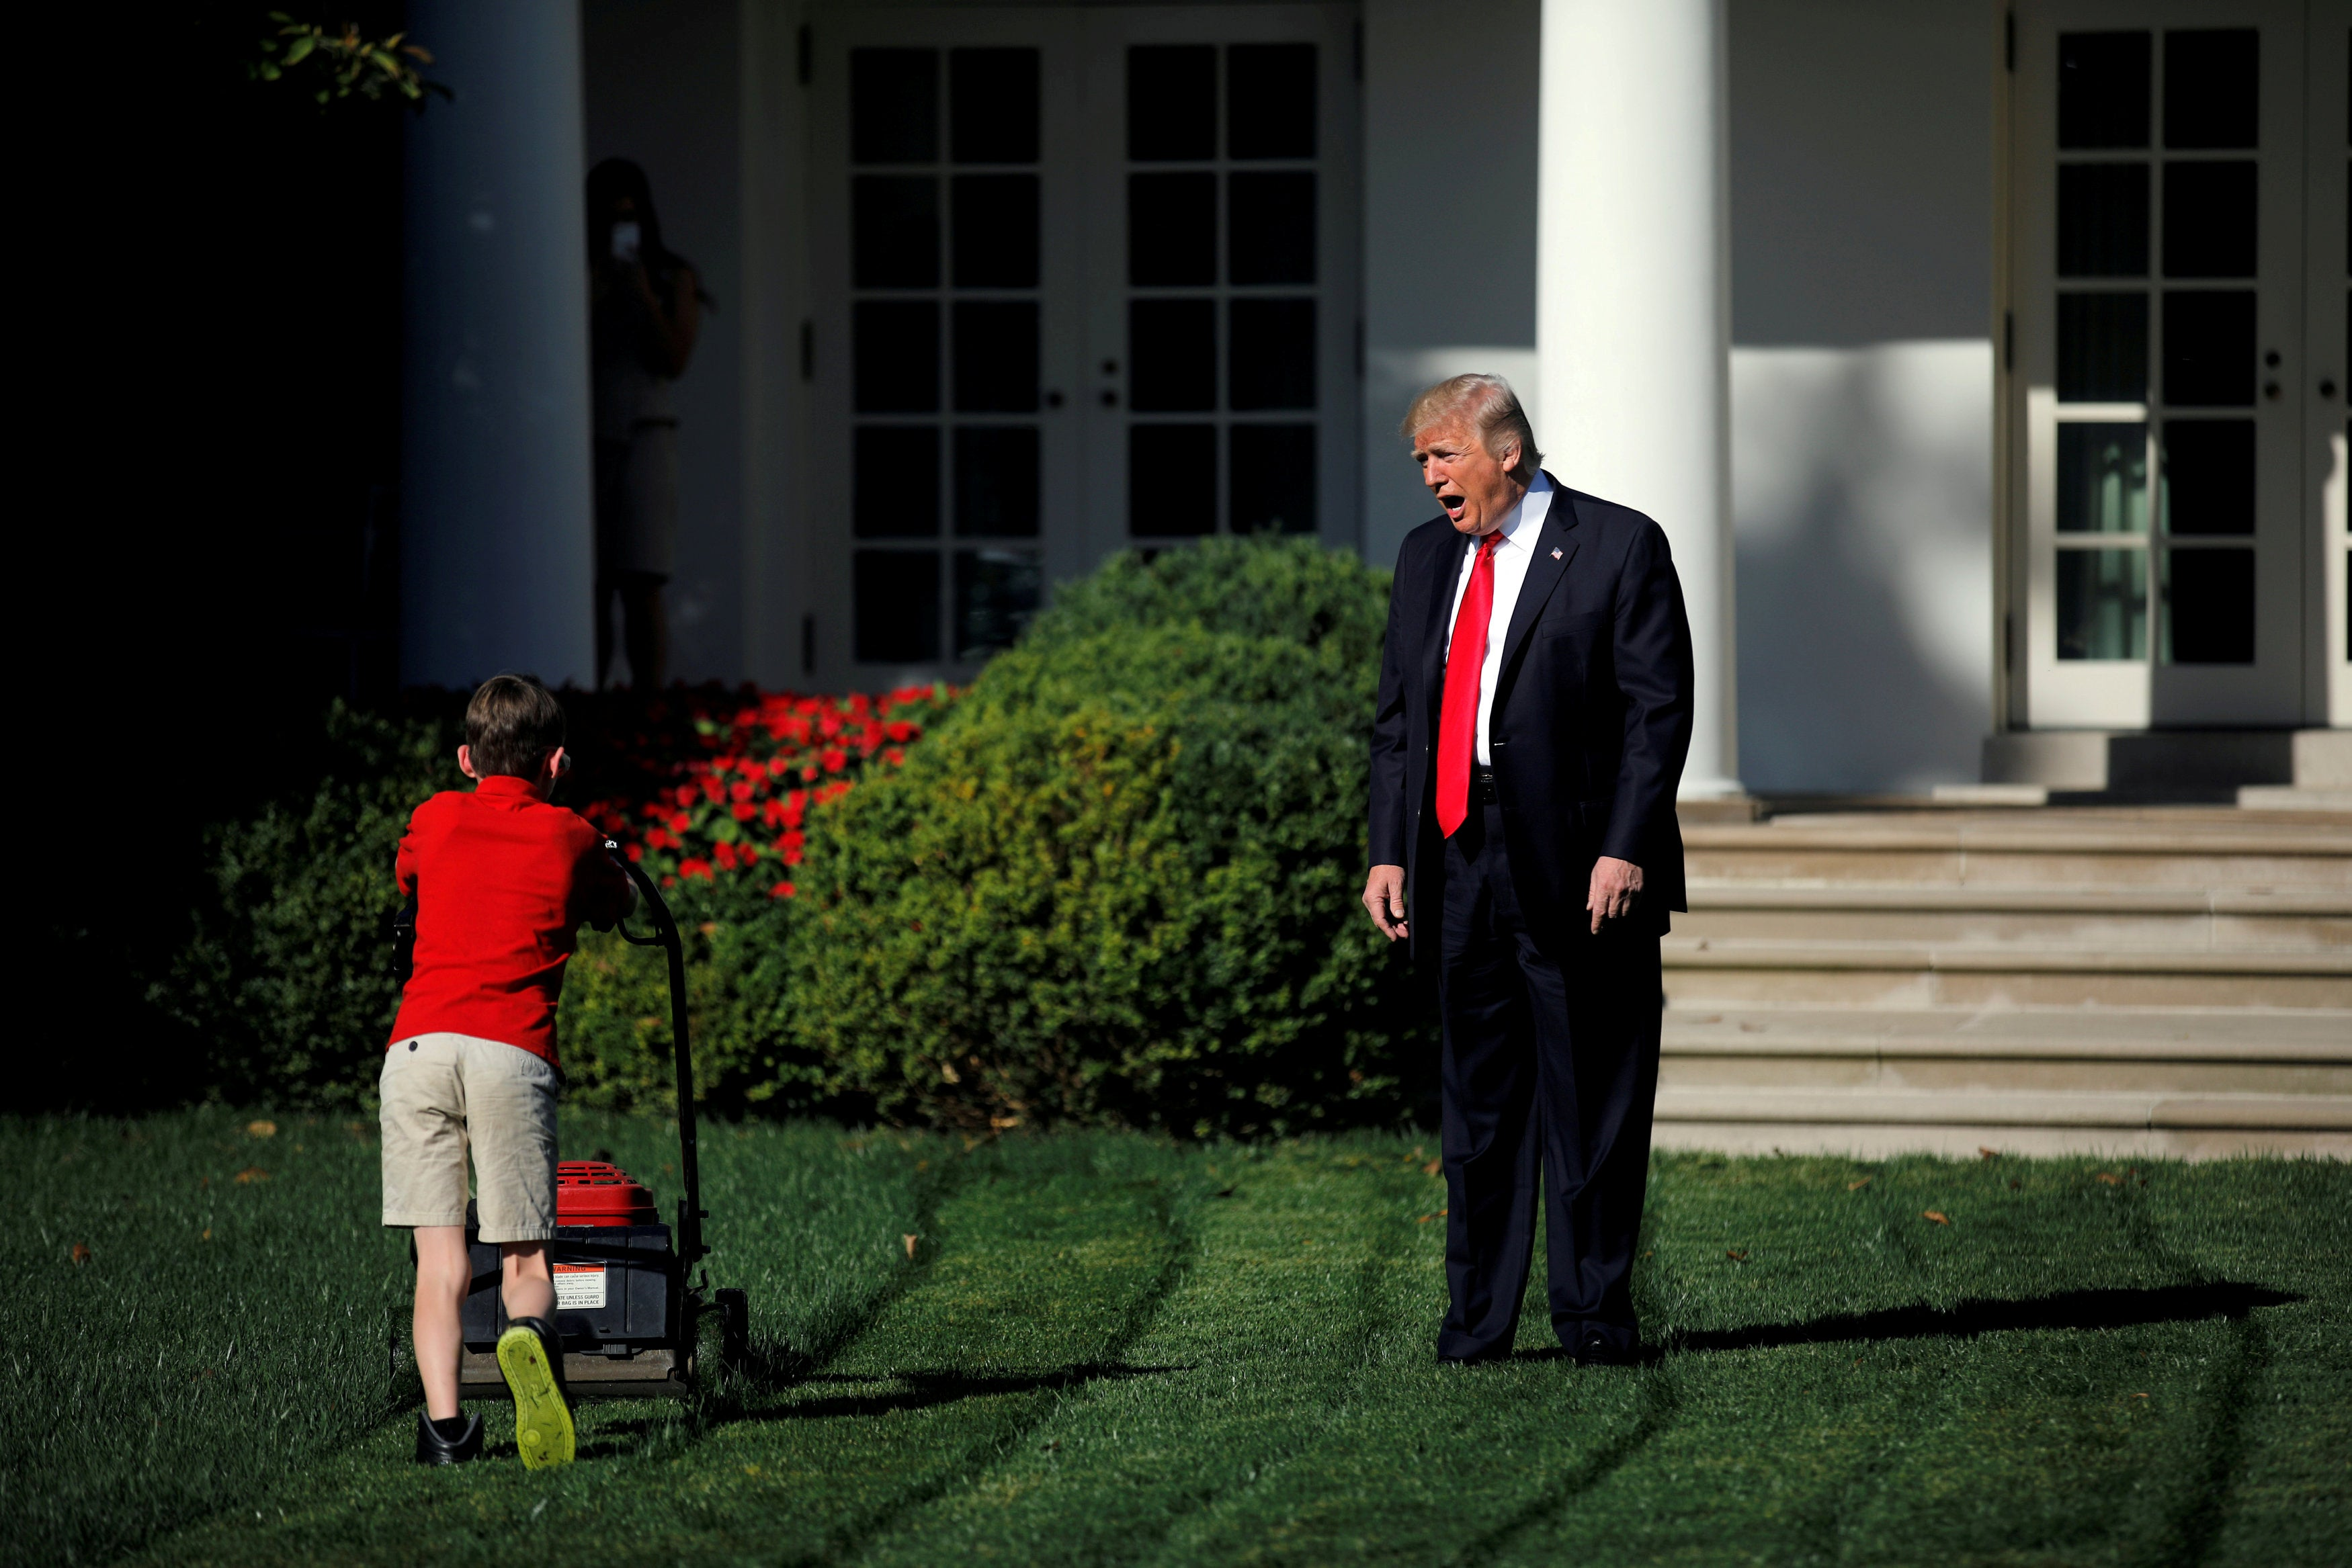 Trump, with his hands at his sides, speaks toward a small boy in a red shirt who is mowing the White House lawn.